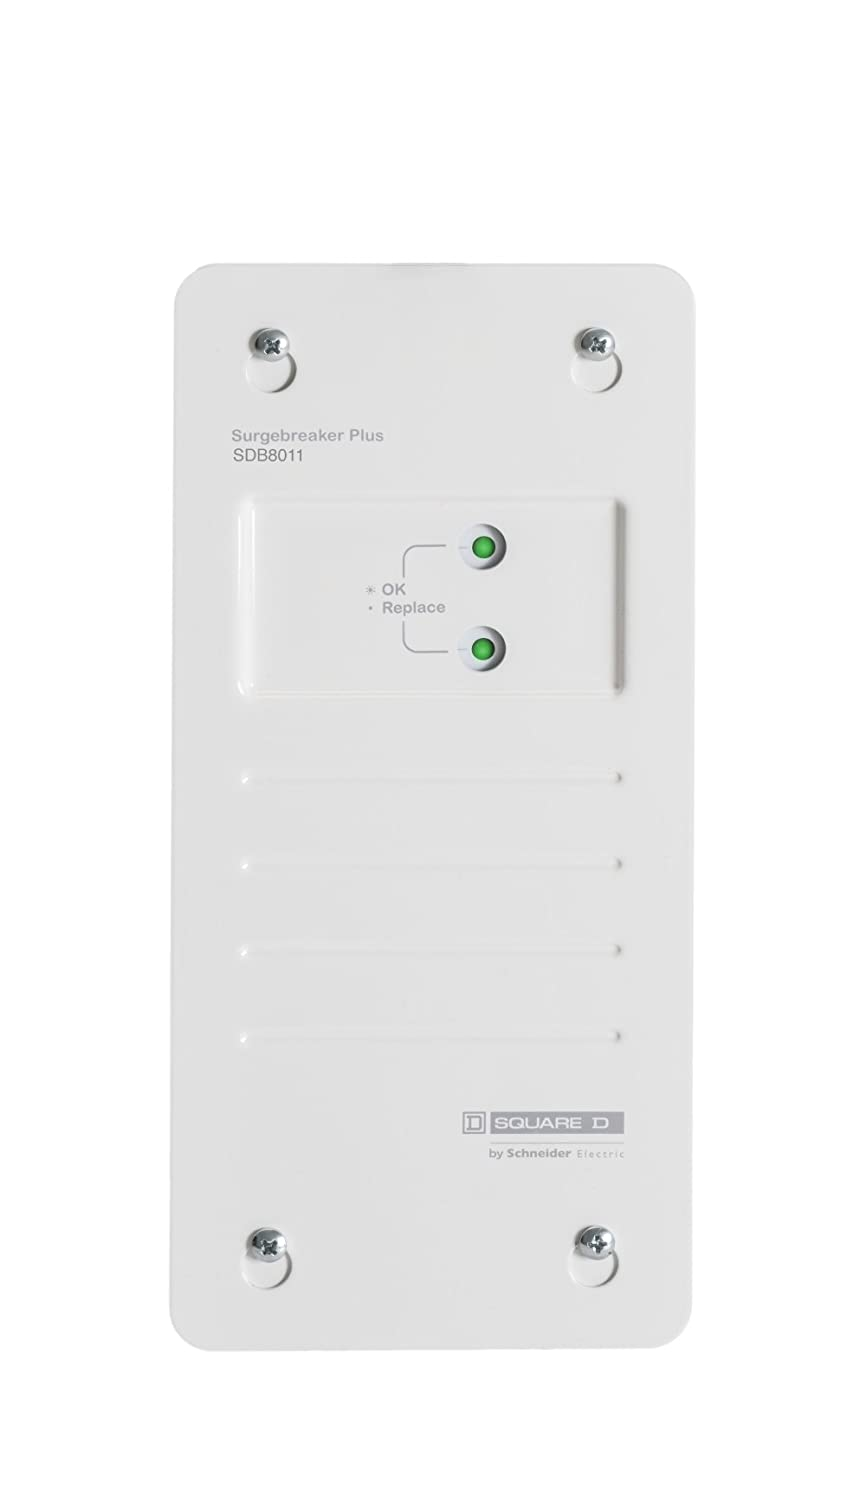 Schneider Electric Sdsb80111ccp Surgebreaker Plus Whole House Surge Protection With Two 20amp Circuit Breakers Protector Grey Cables Amazon Canada